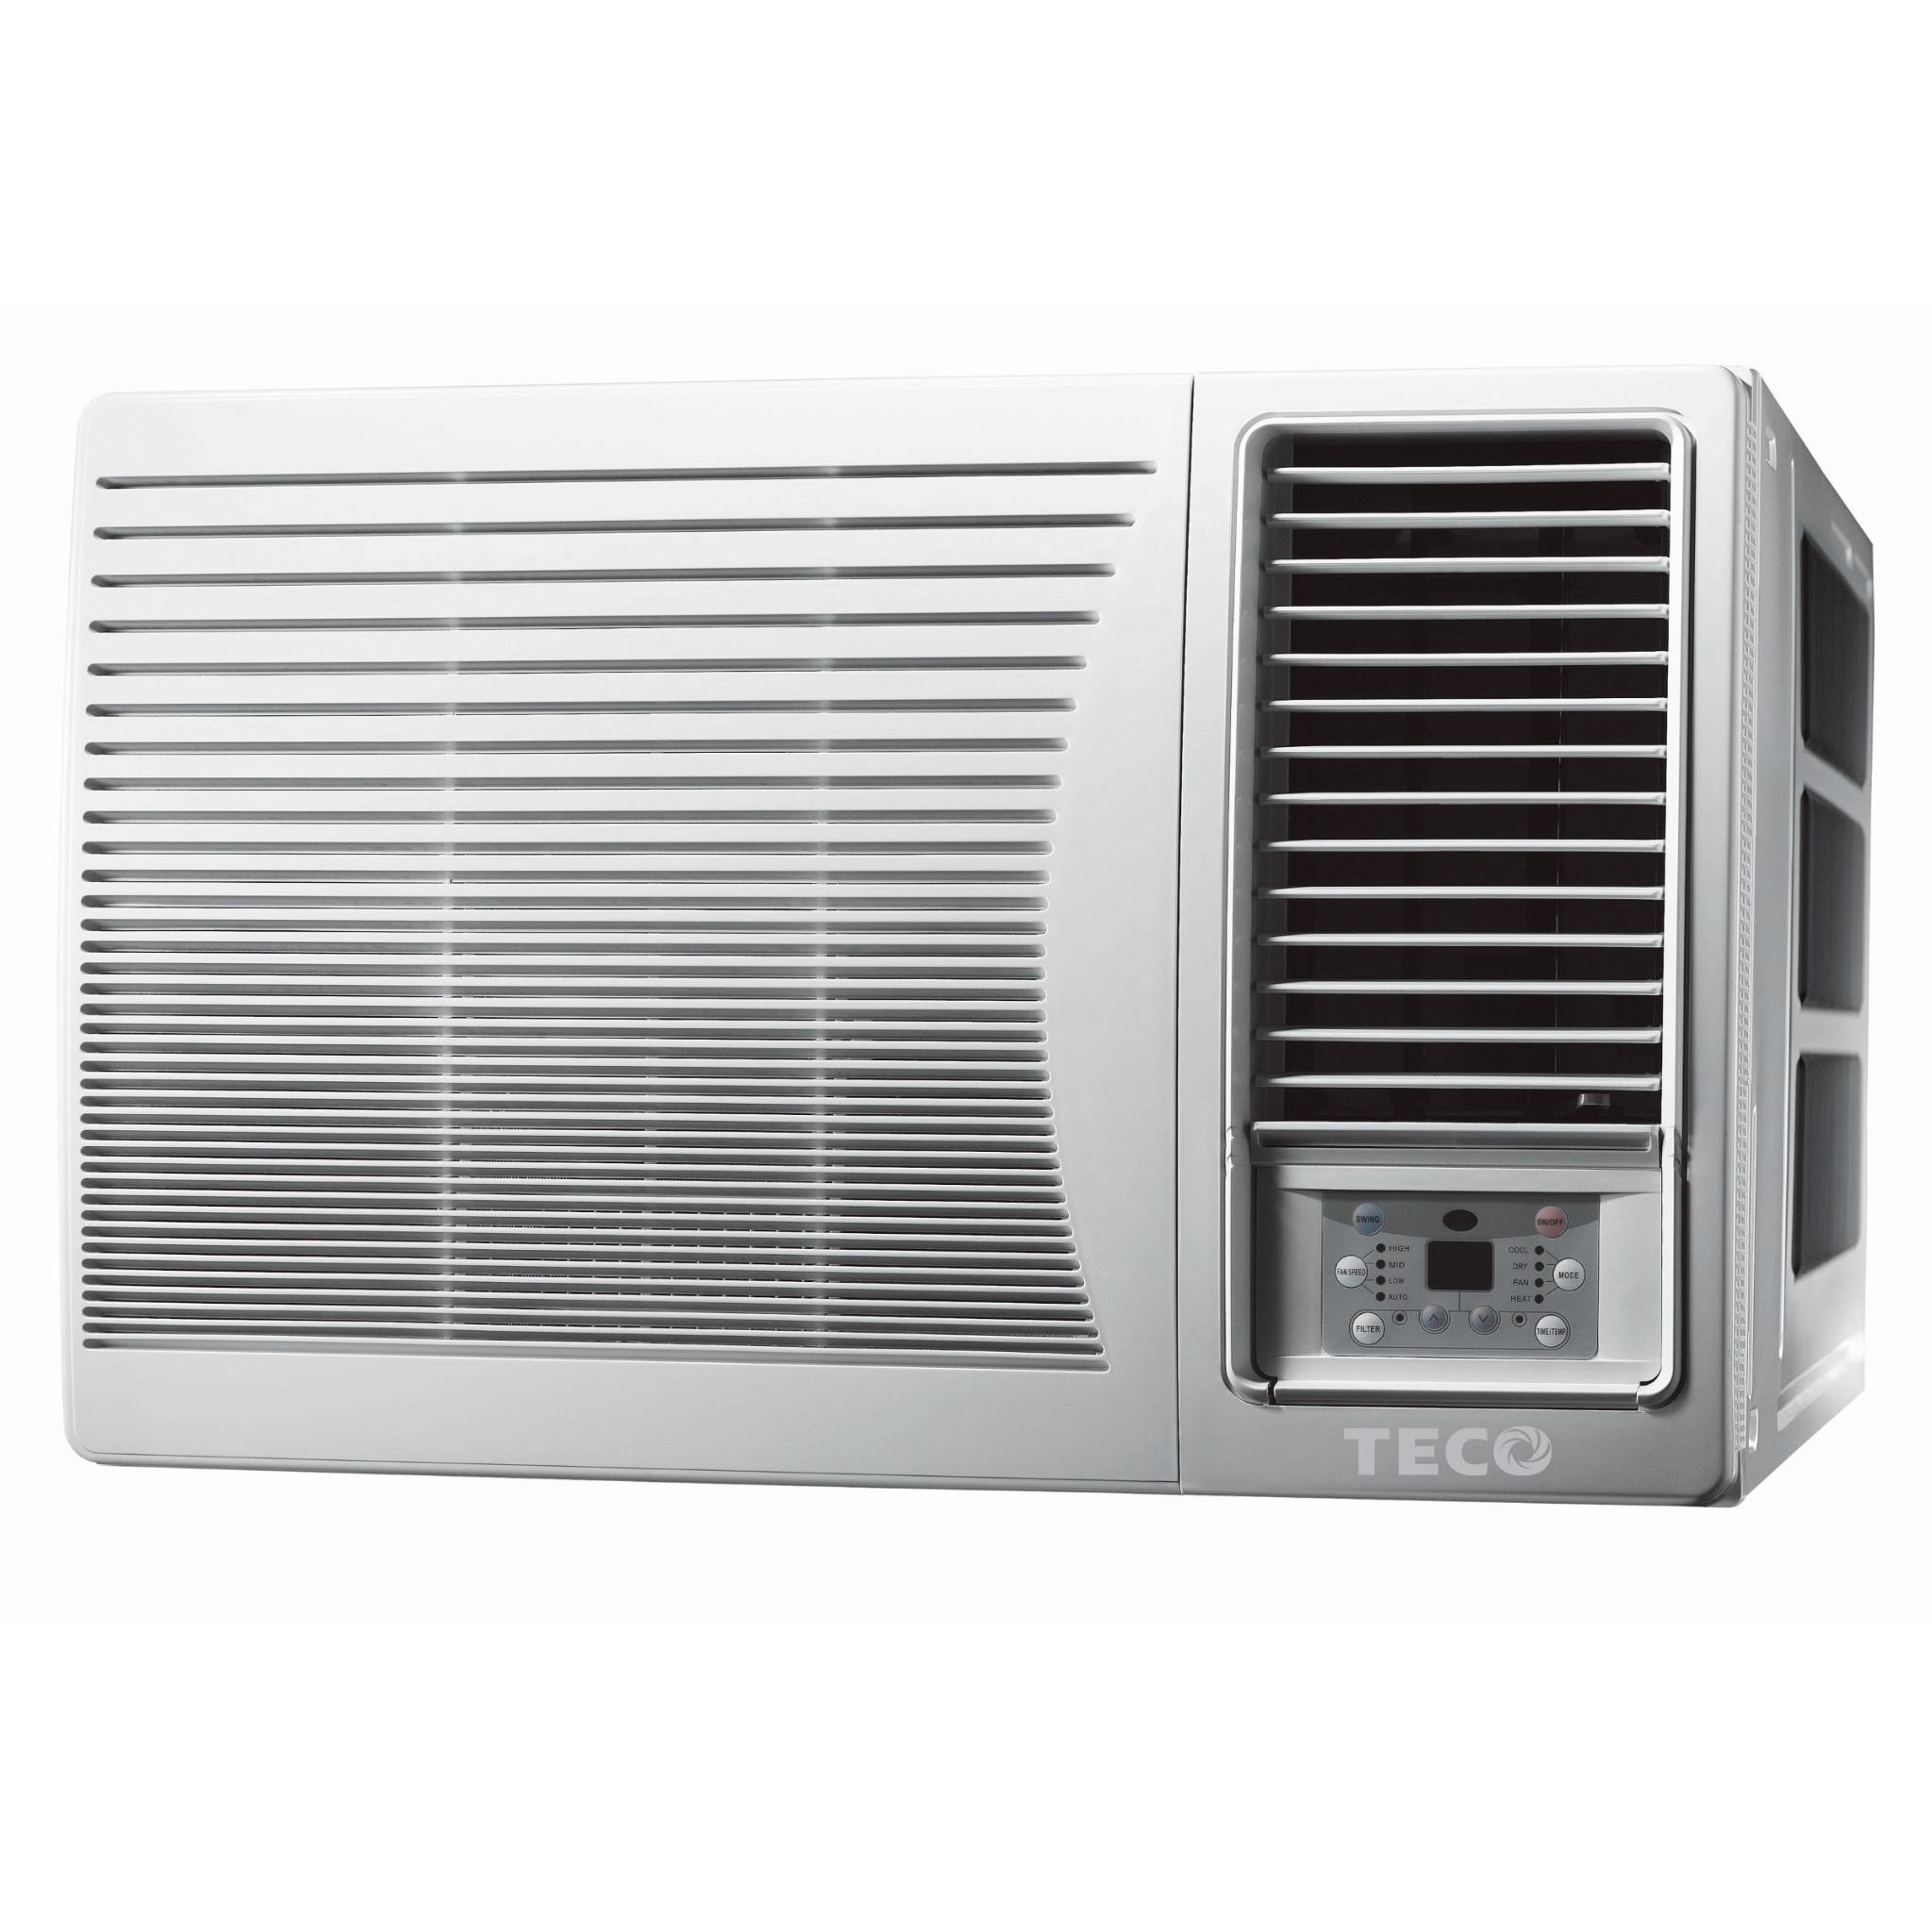 Teco 4.0kW Window/Wall Room Reverse Cycle Air Conditioner